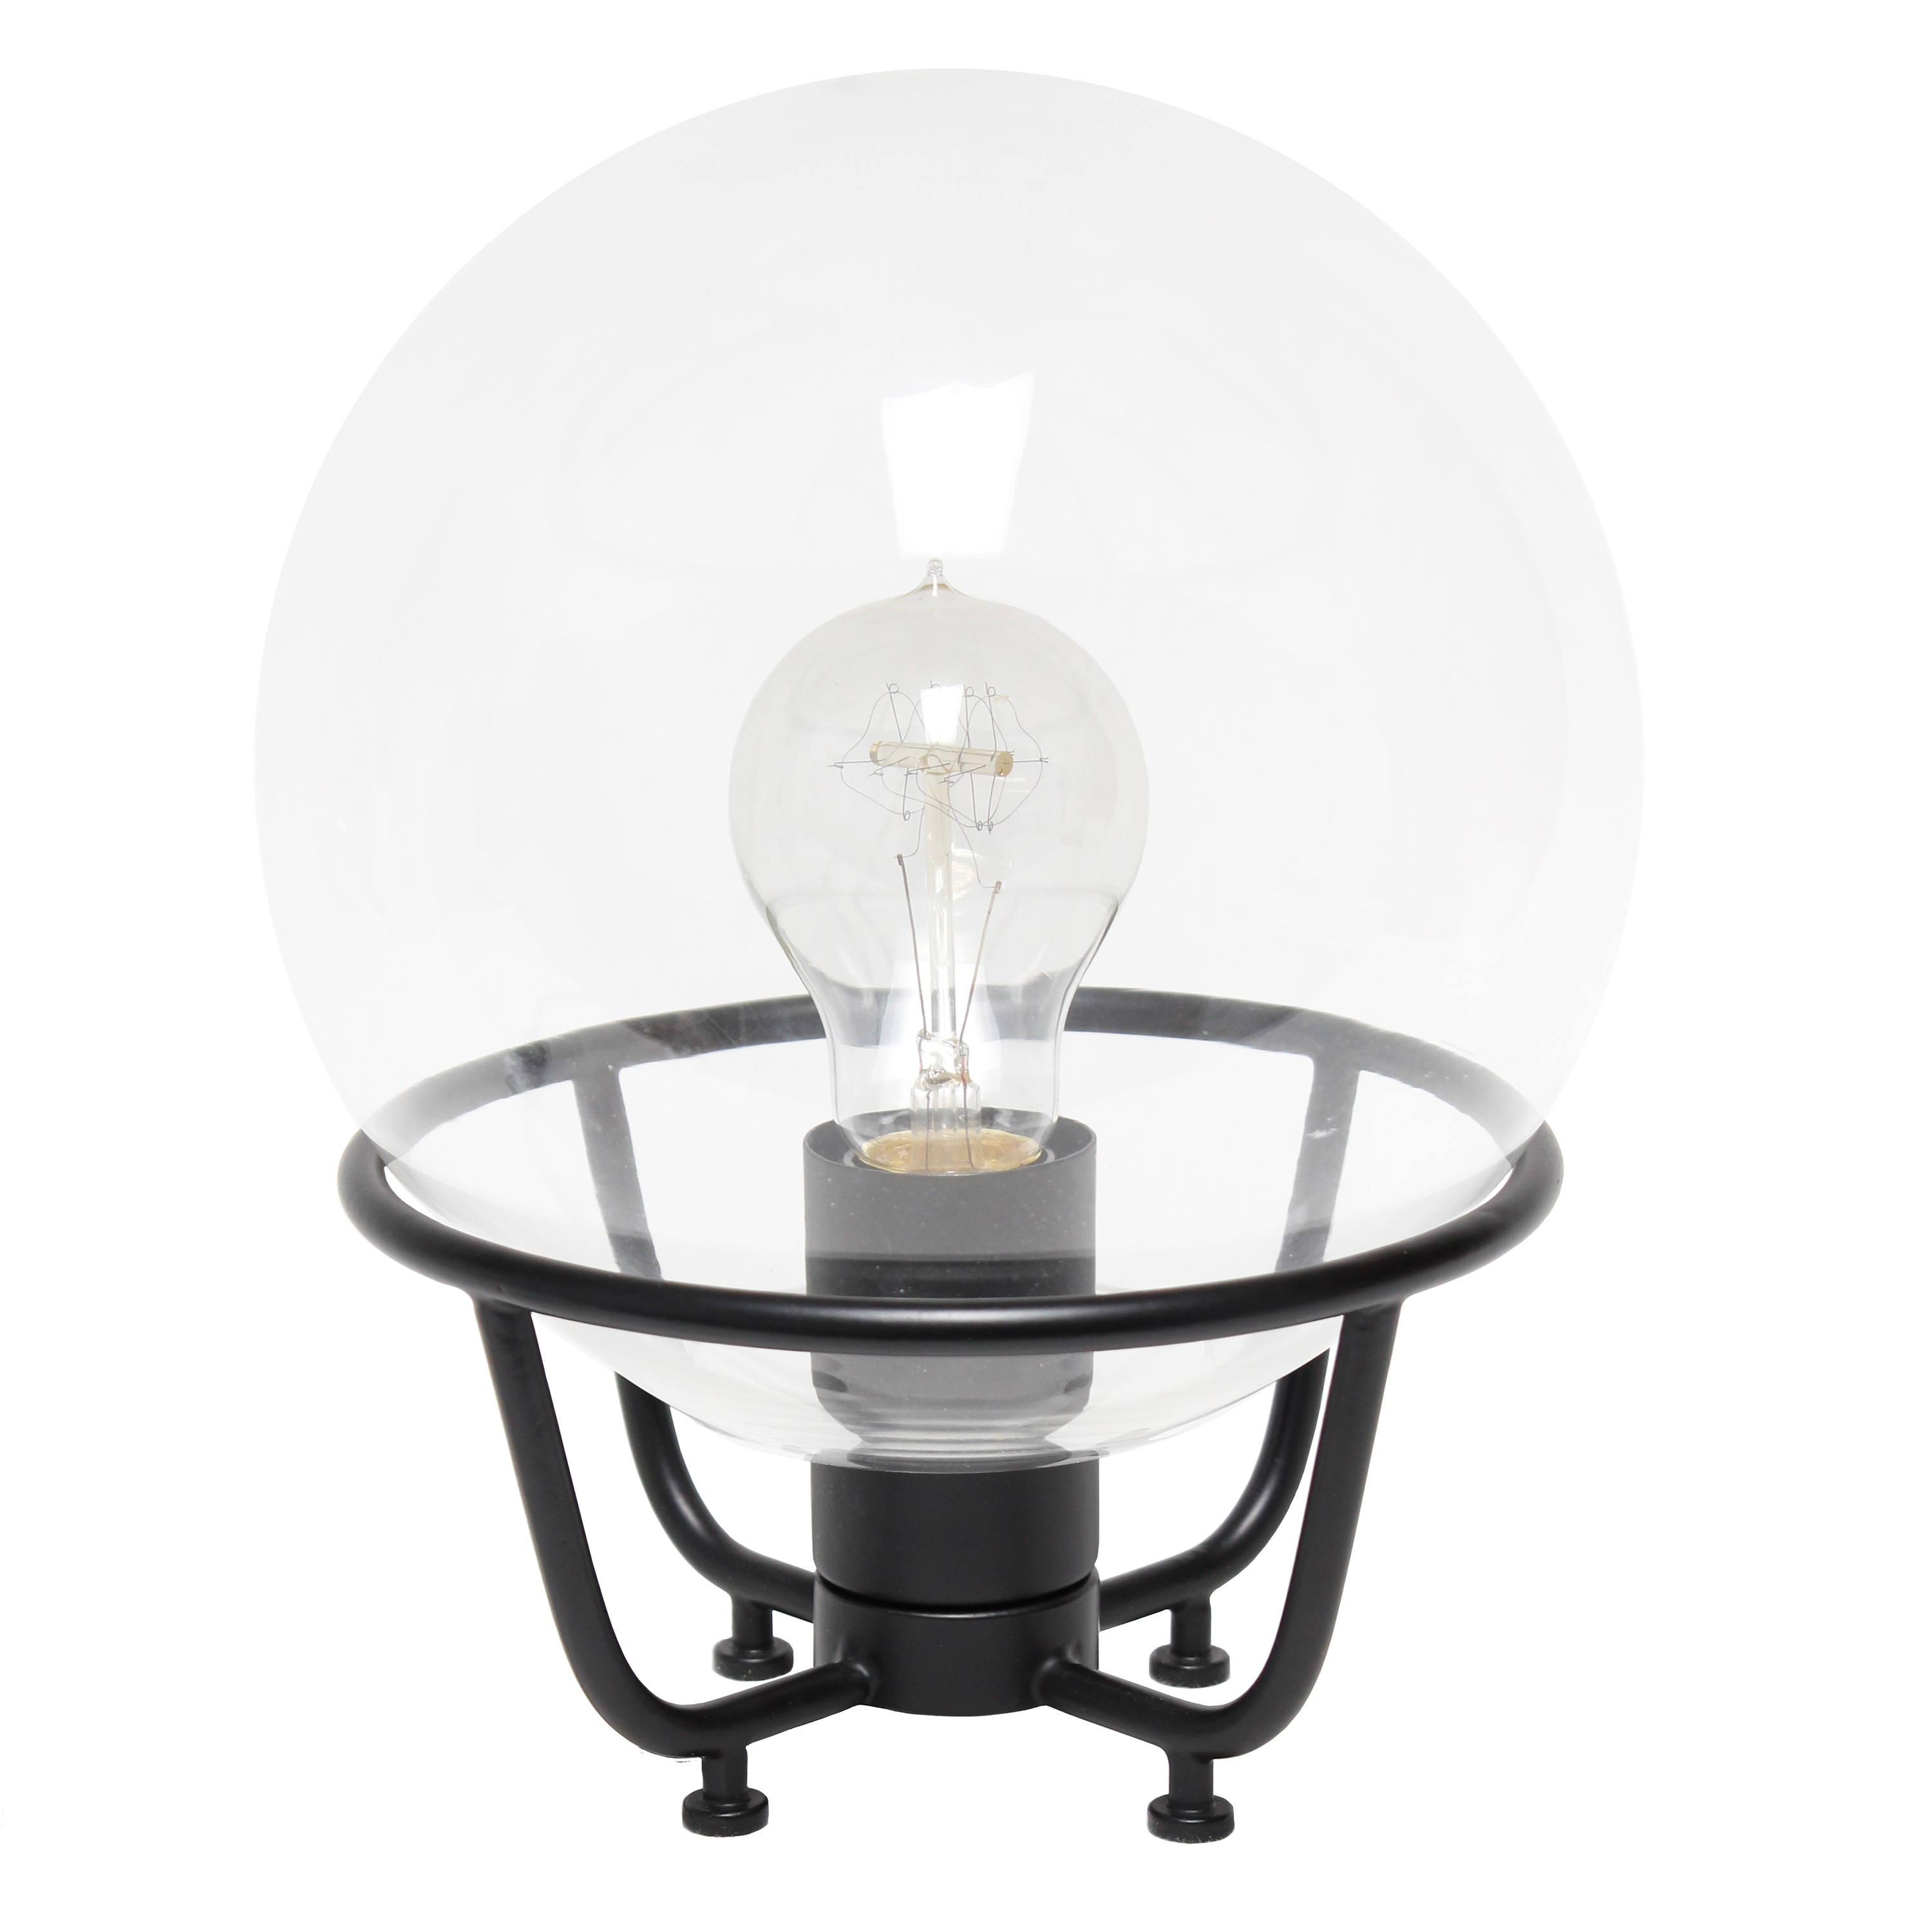 Lalia Home Old World Globe Glass Table Lamp, Black